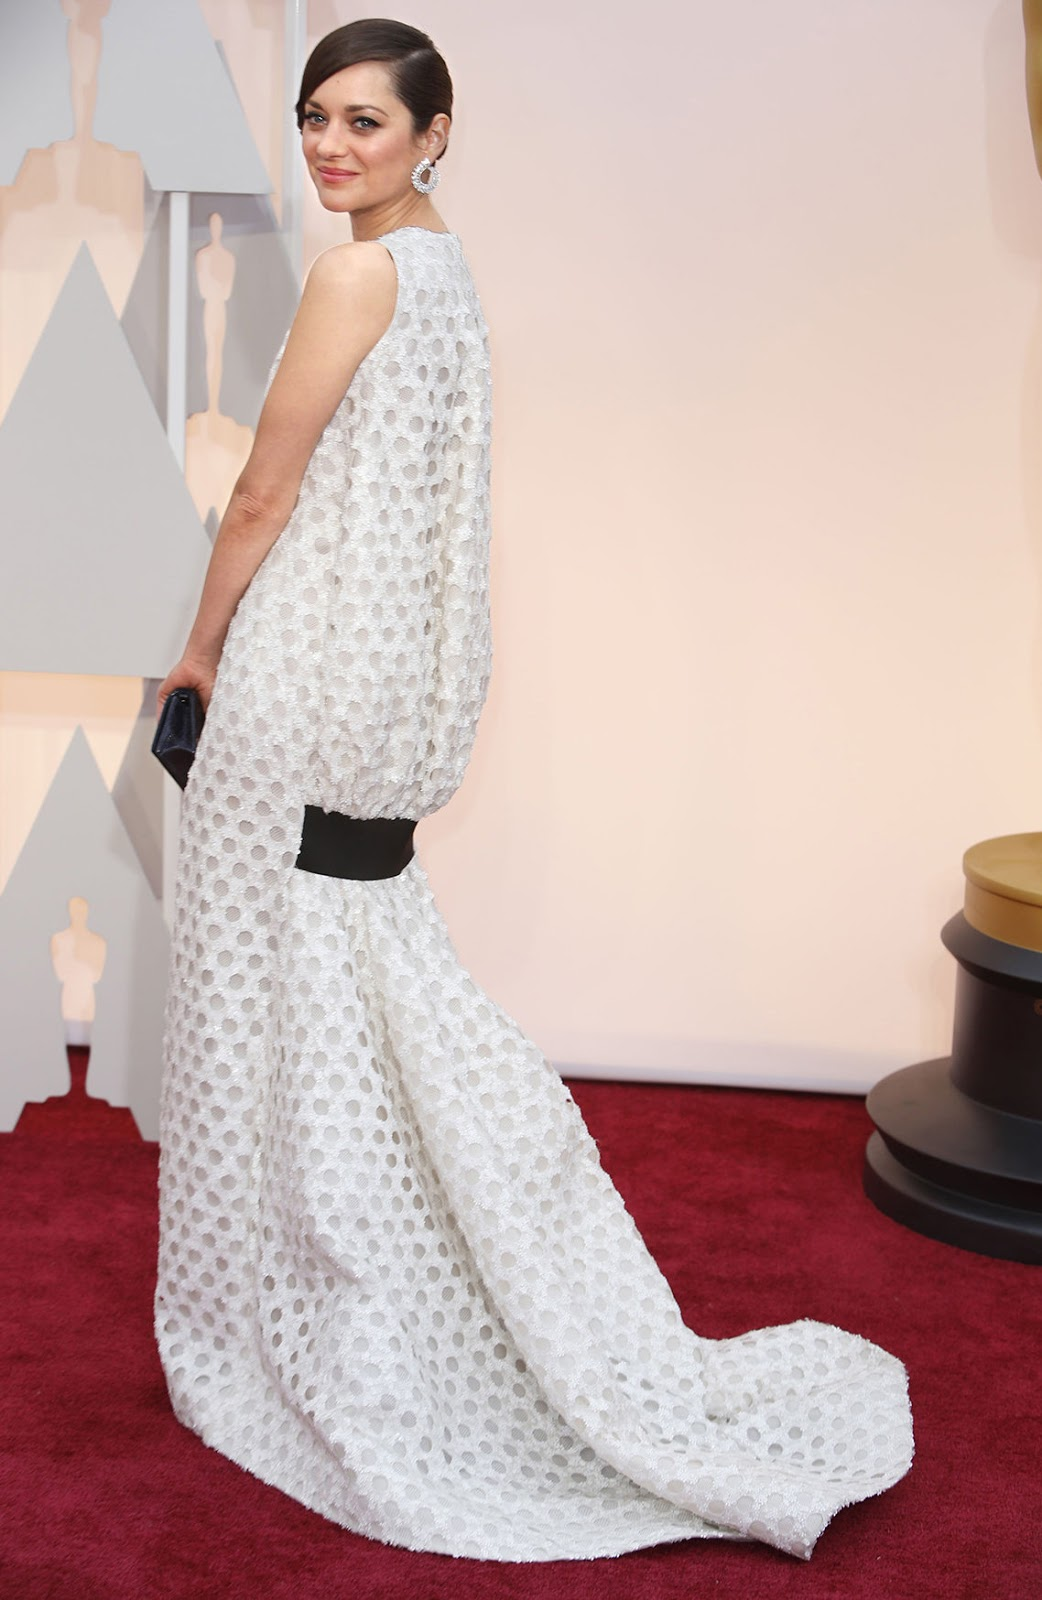 Marion Cotillard in Dior at the Oscars 2015